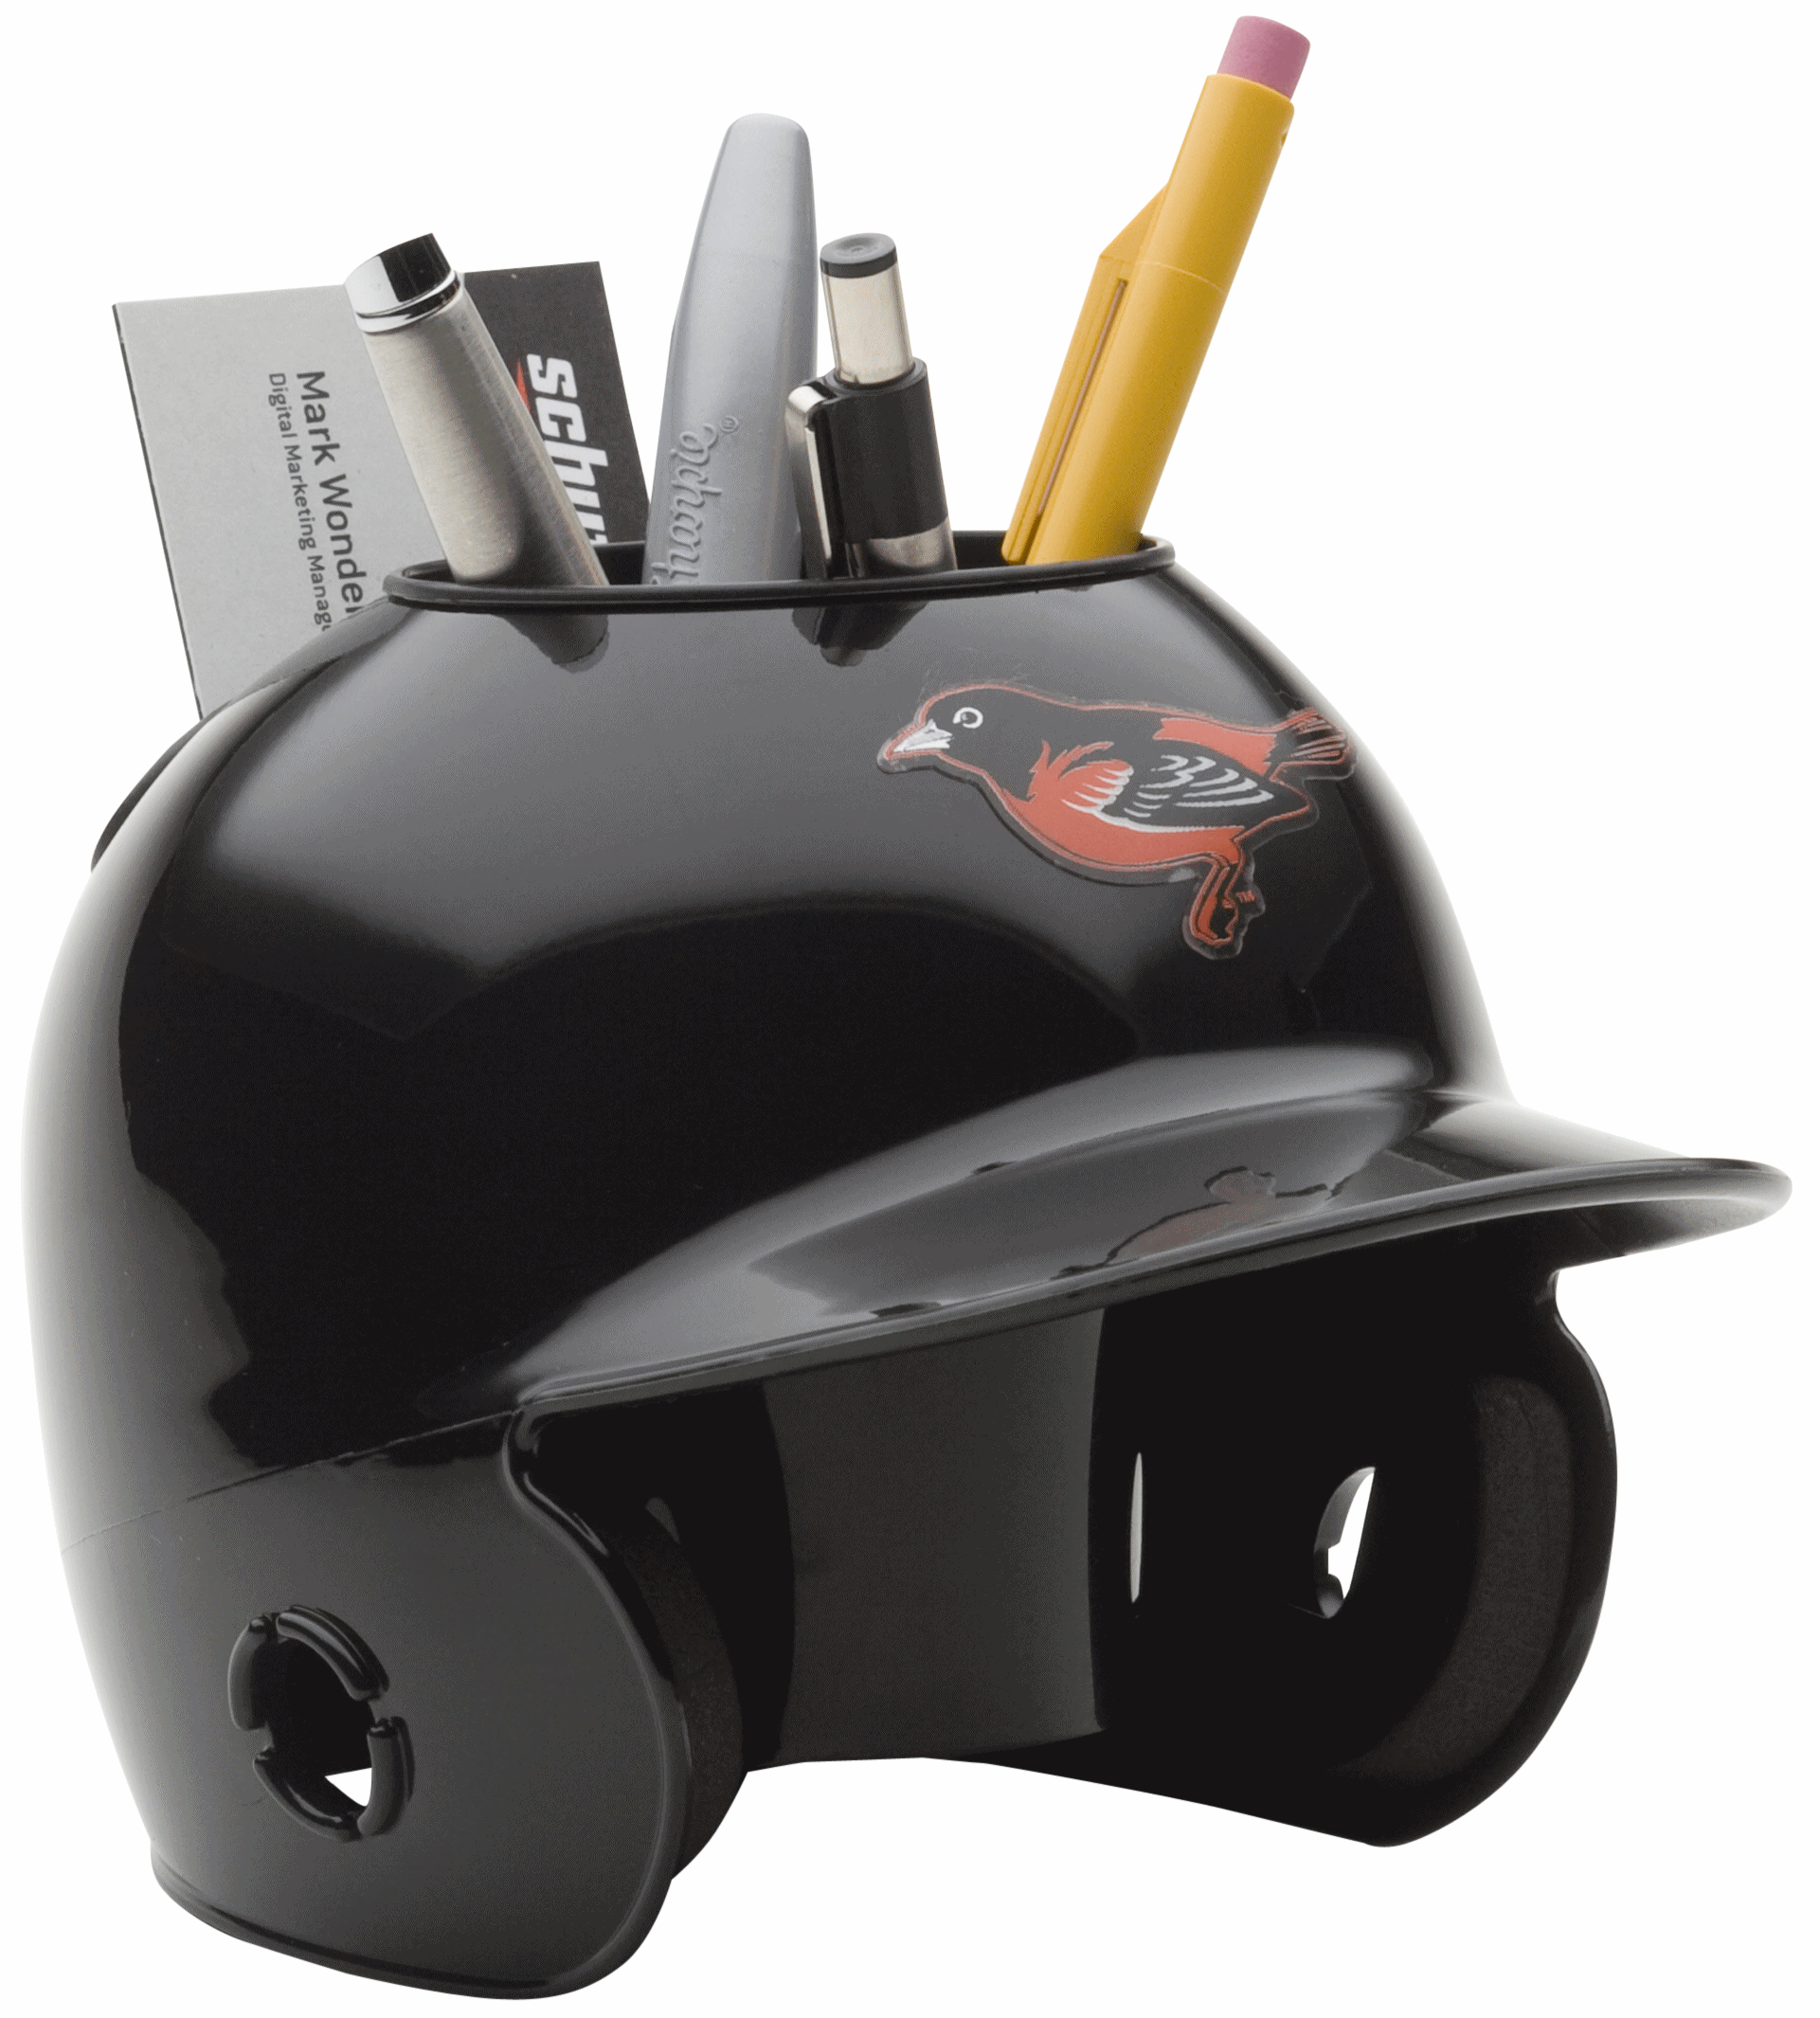 Baltimore Orioles Miniature Batters Helmet Desk Caddy